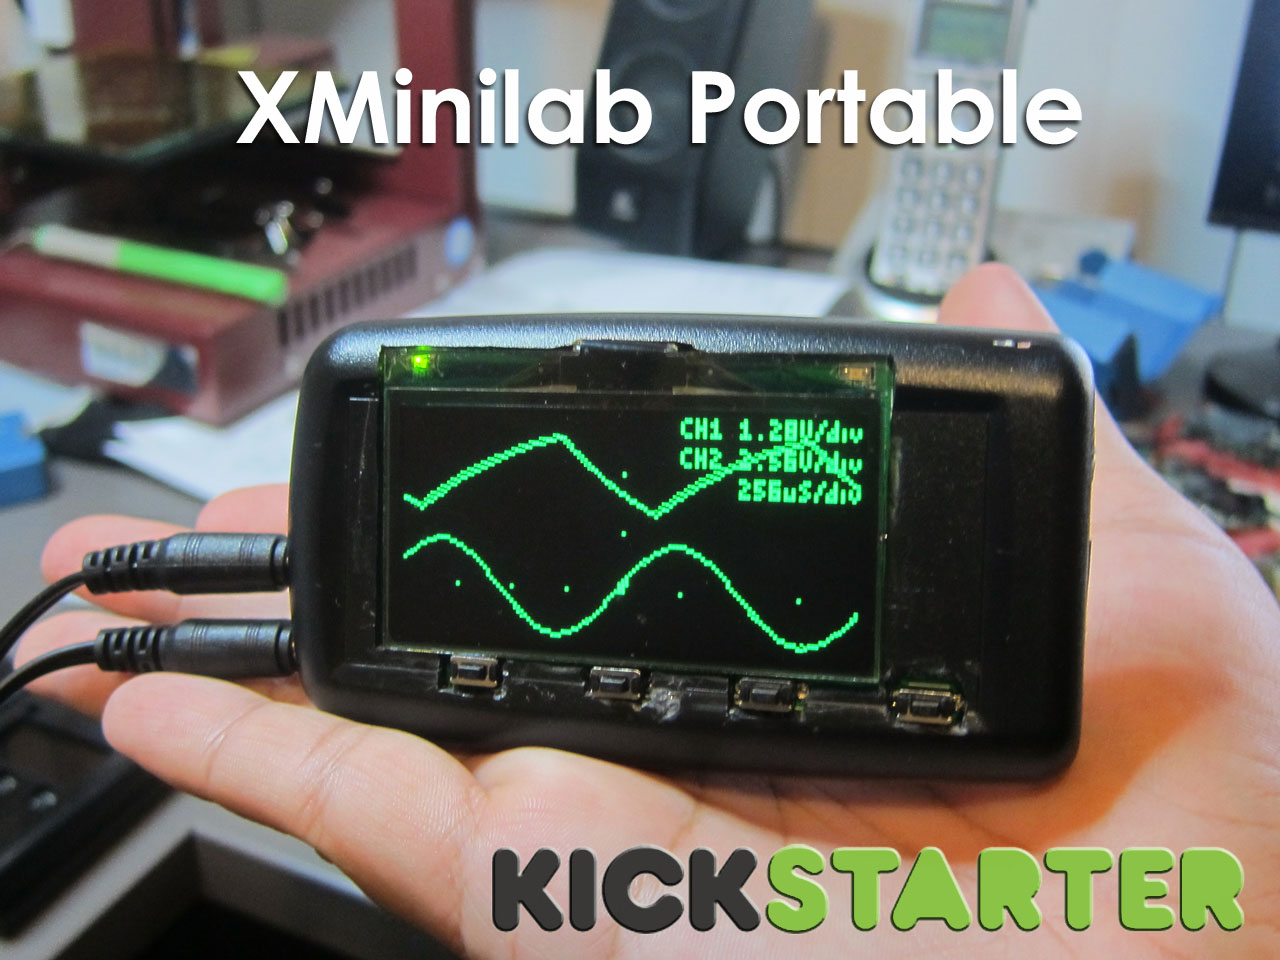 Xminilab Portable on KickStarter